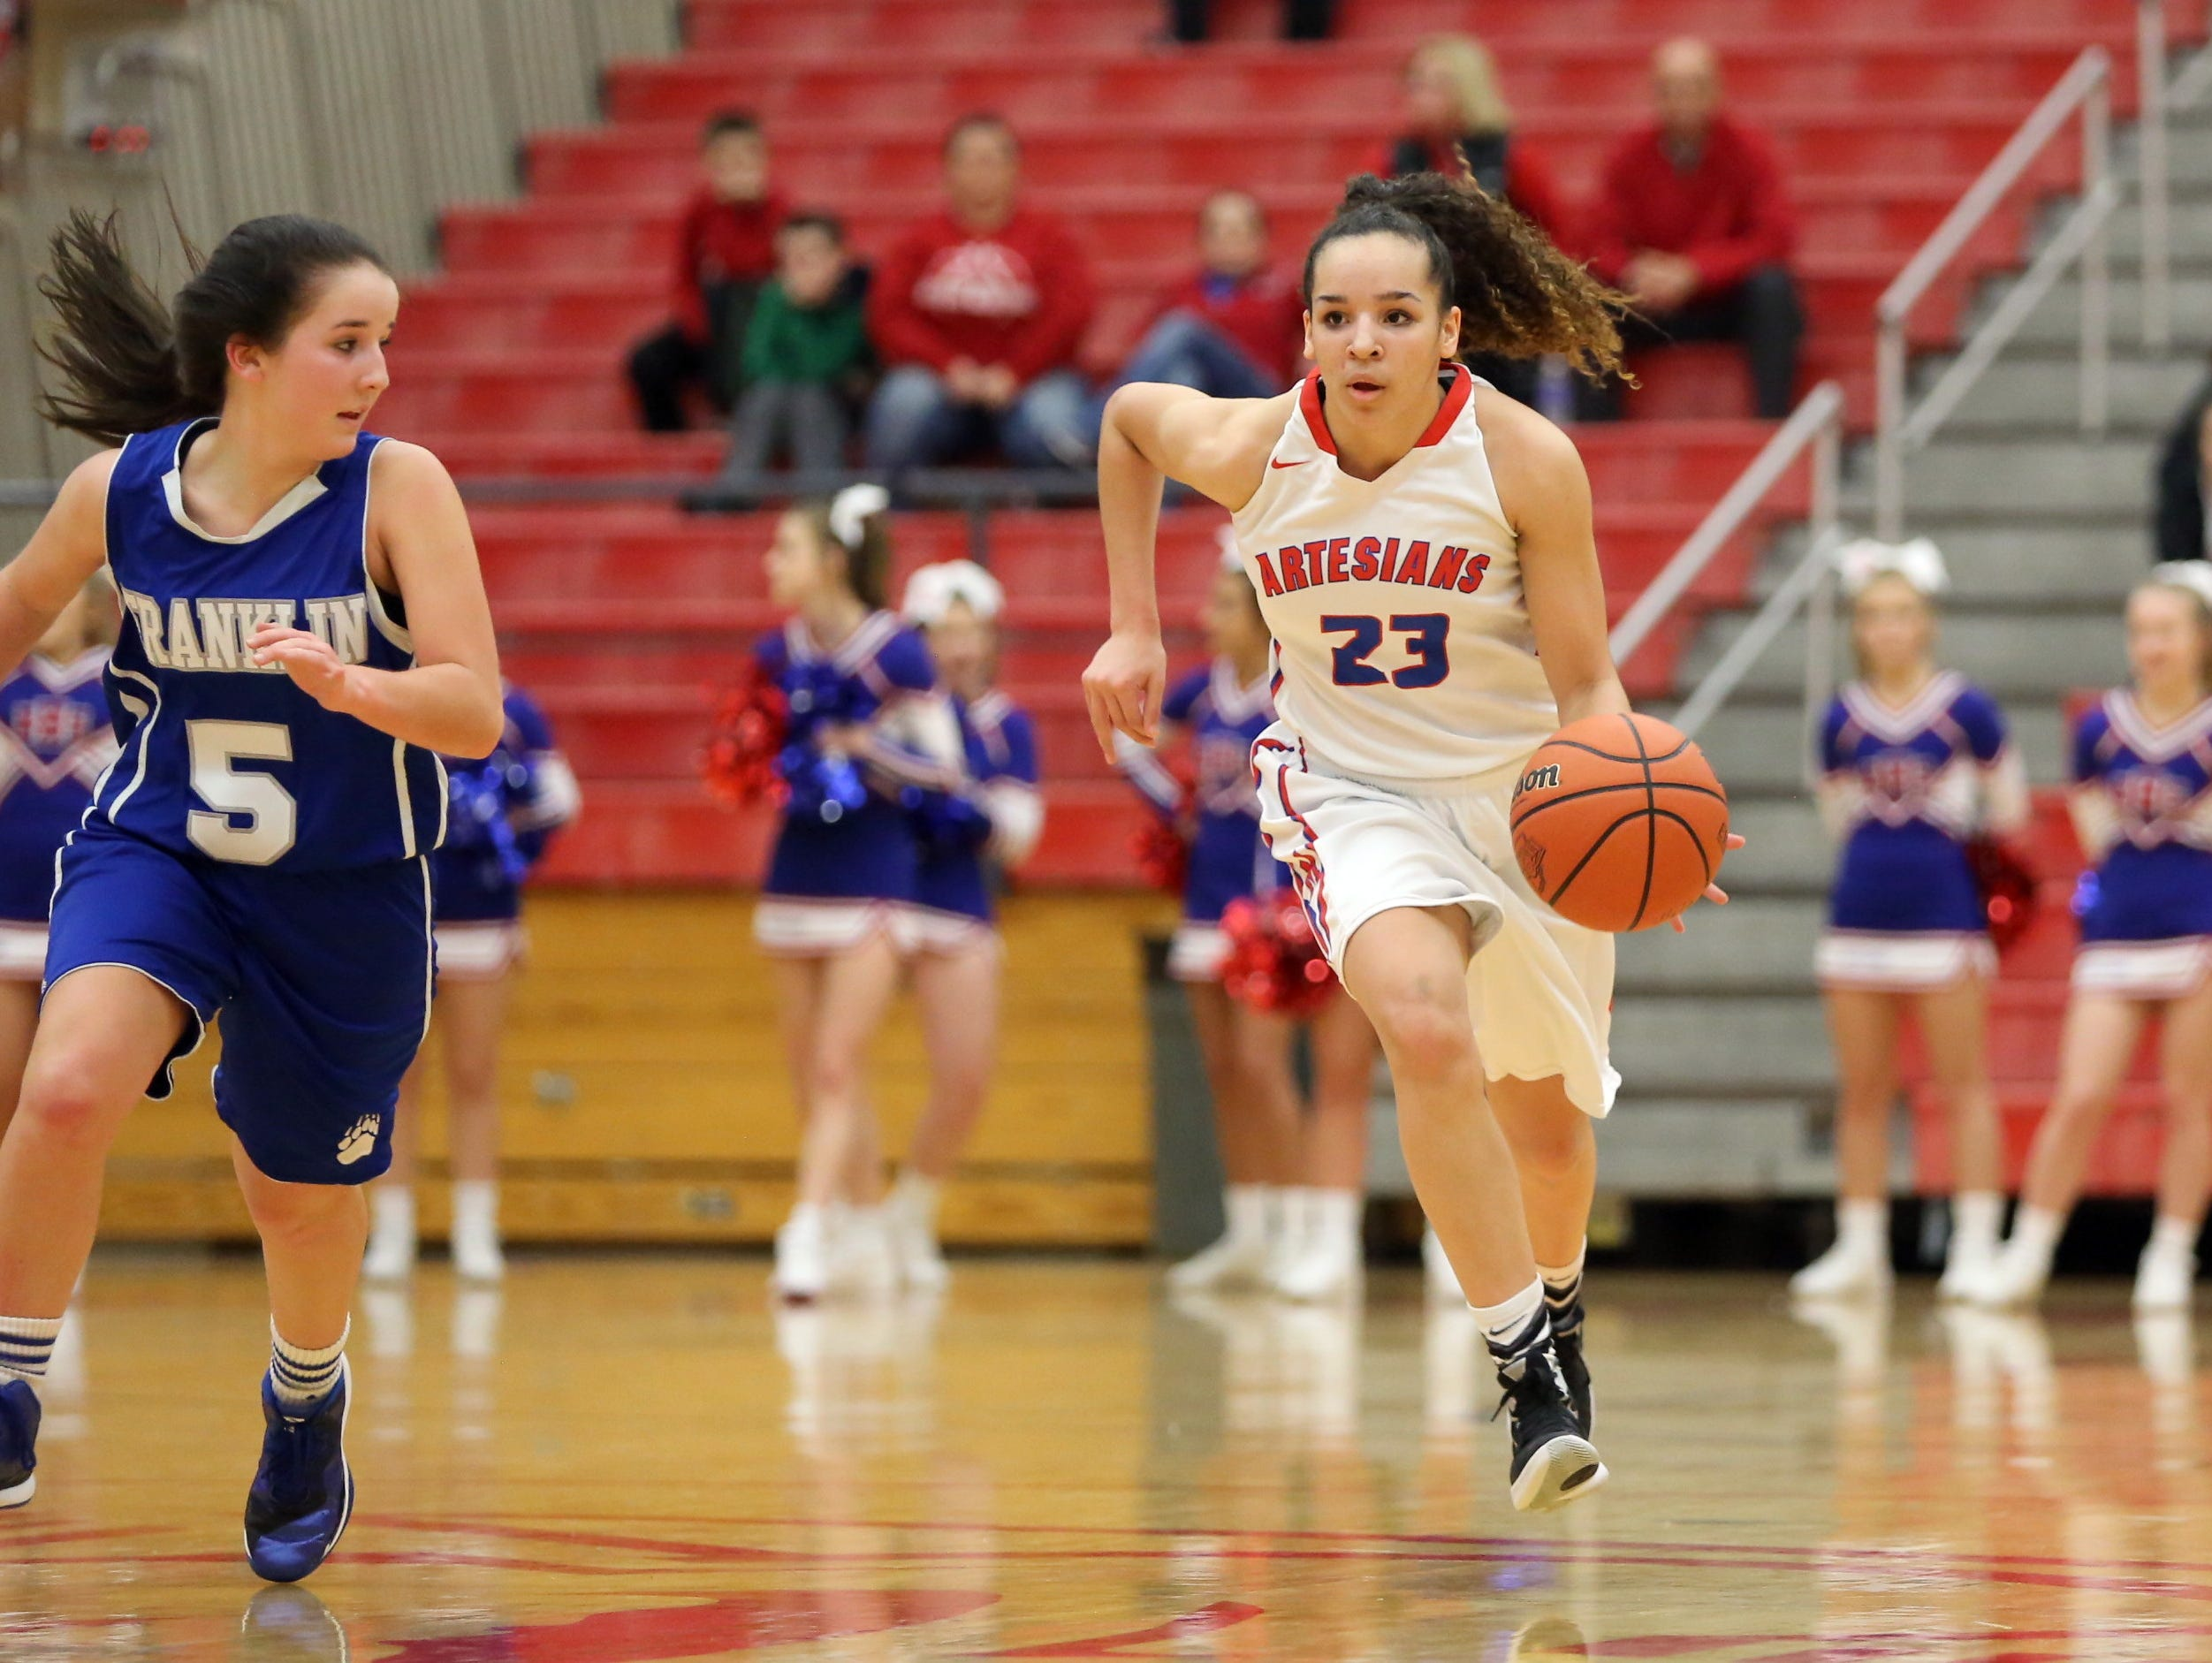 Martinsville's Kayana Traylor is committed to Purdue.